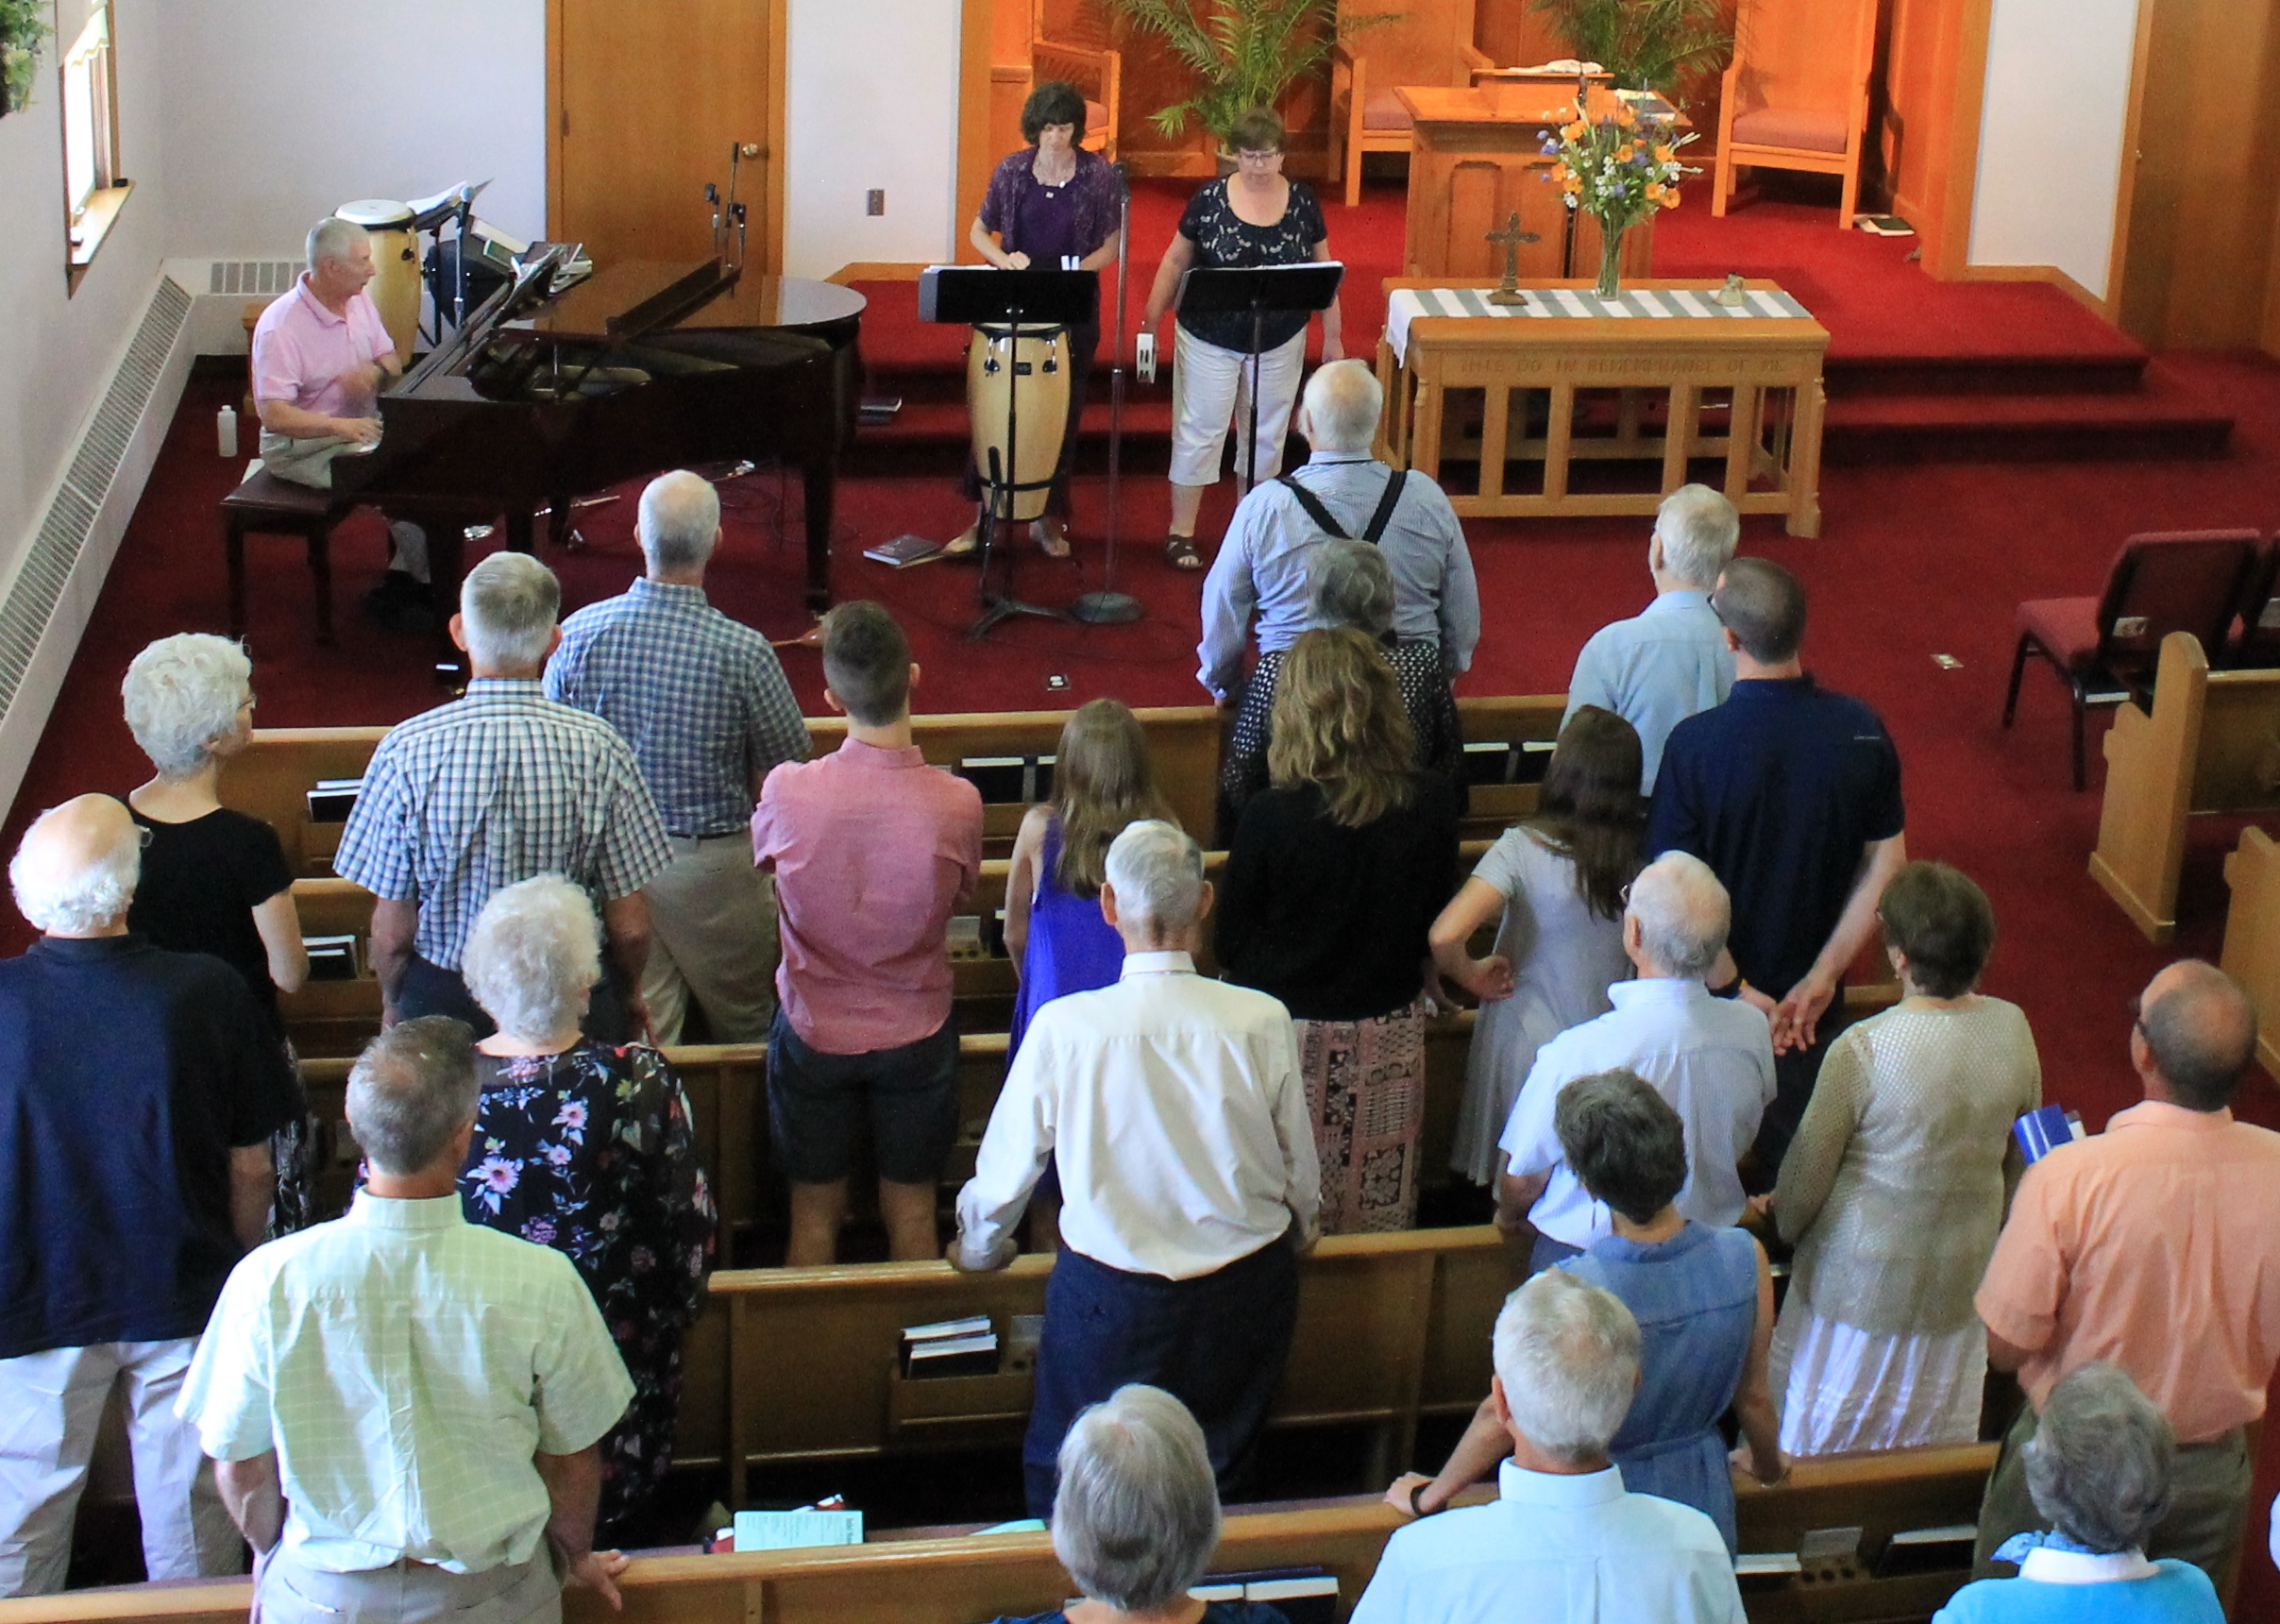 Bethel Mennonite Church | A congregation of Mennonite Church USA